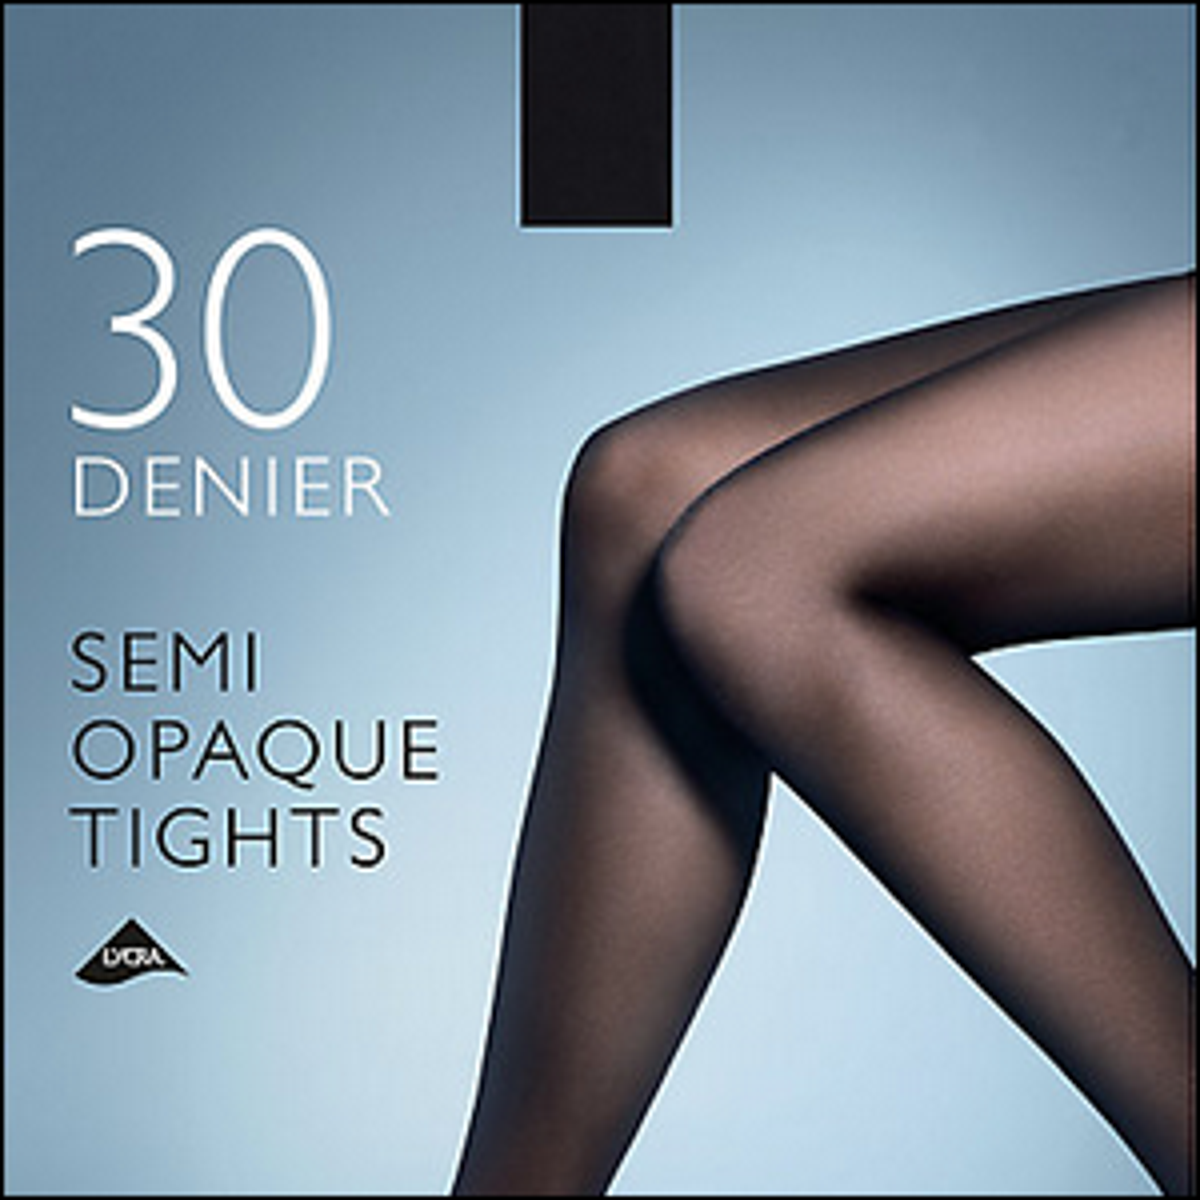 A front package label for 30 denier semi-opaque tights.